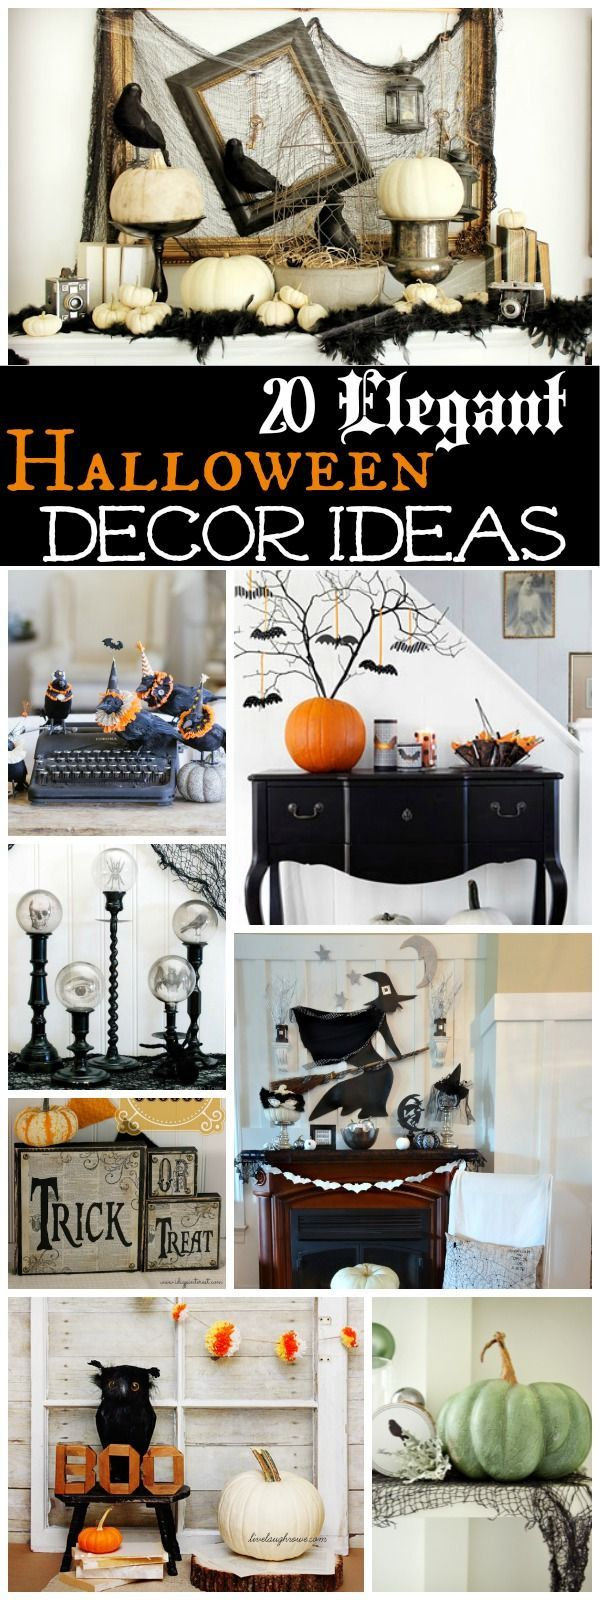 20 Spooktacularly Elegant DIY Halloween Decor Ideas | The Happy Housie